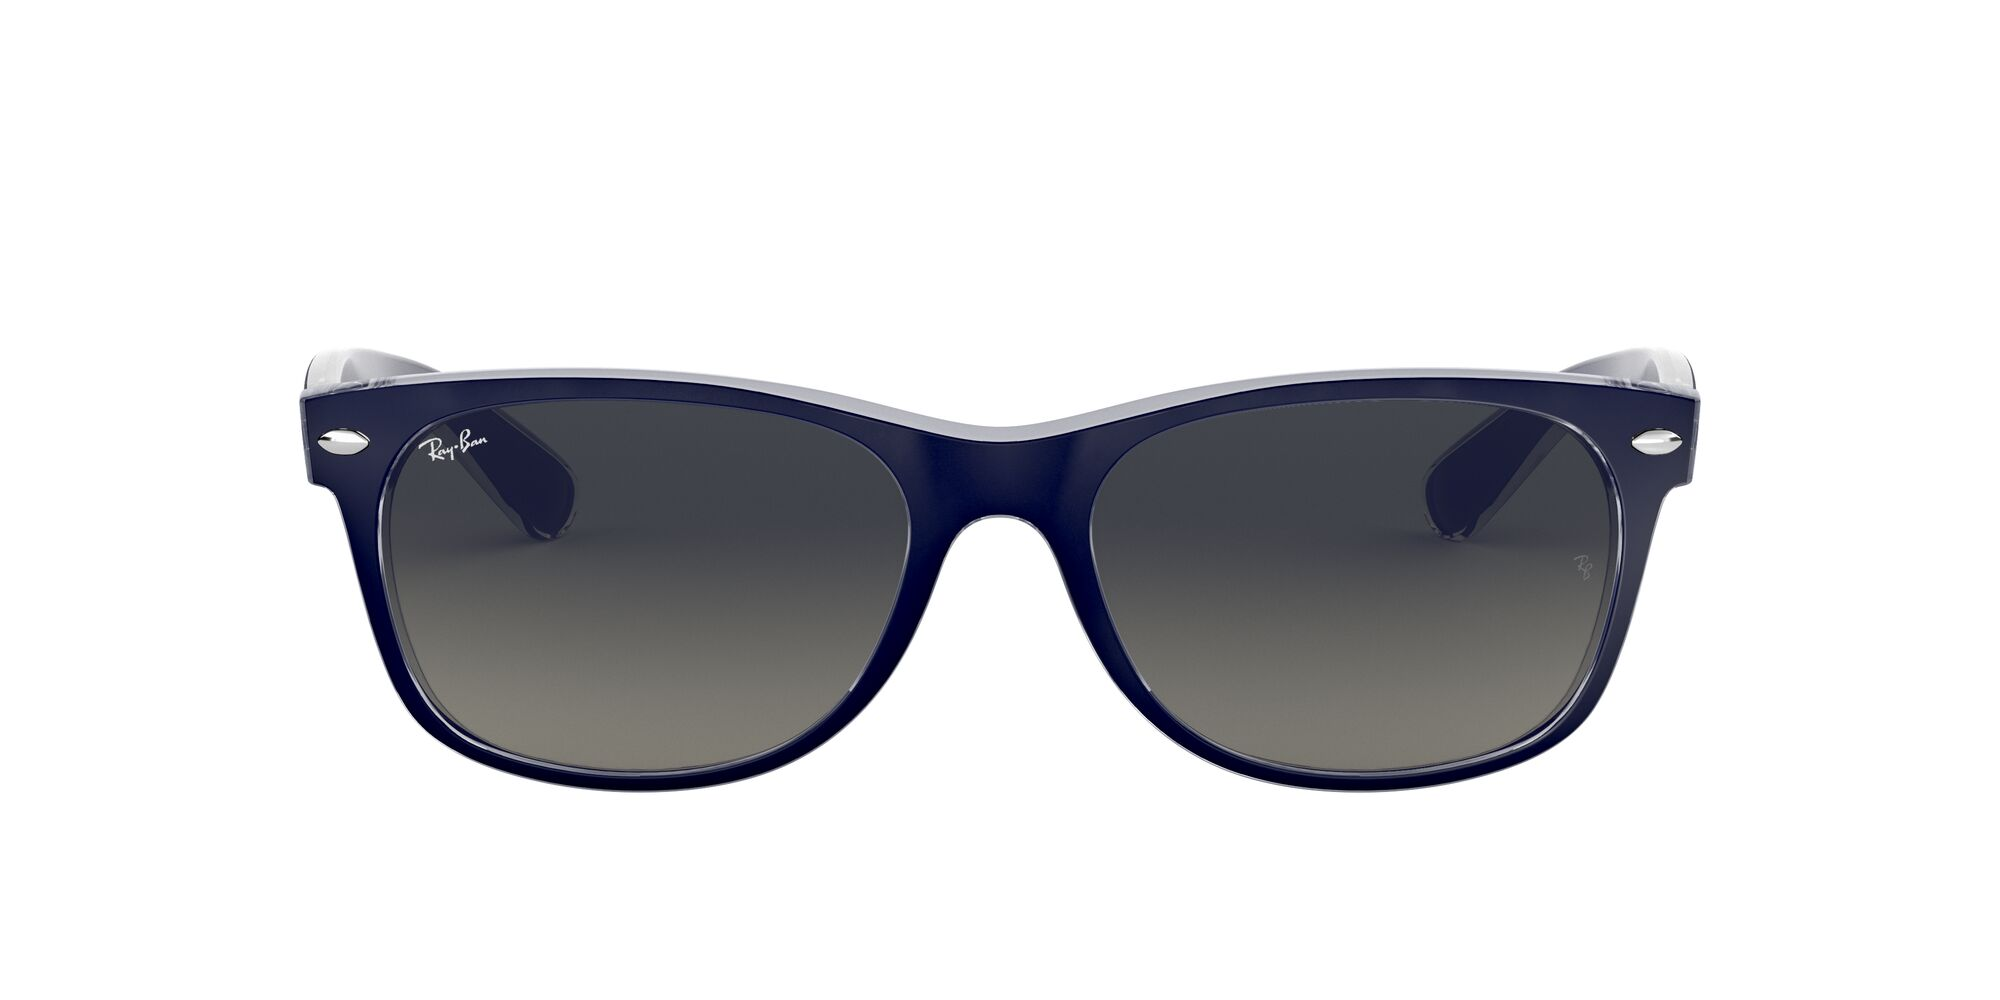 Front Ray-Ban Ray-Ban 0RB2132 605371 52/18 Blauw/Grijs